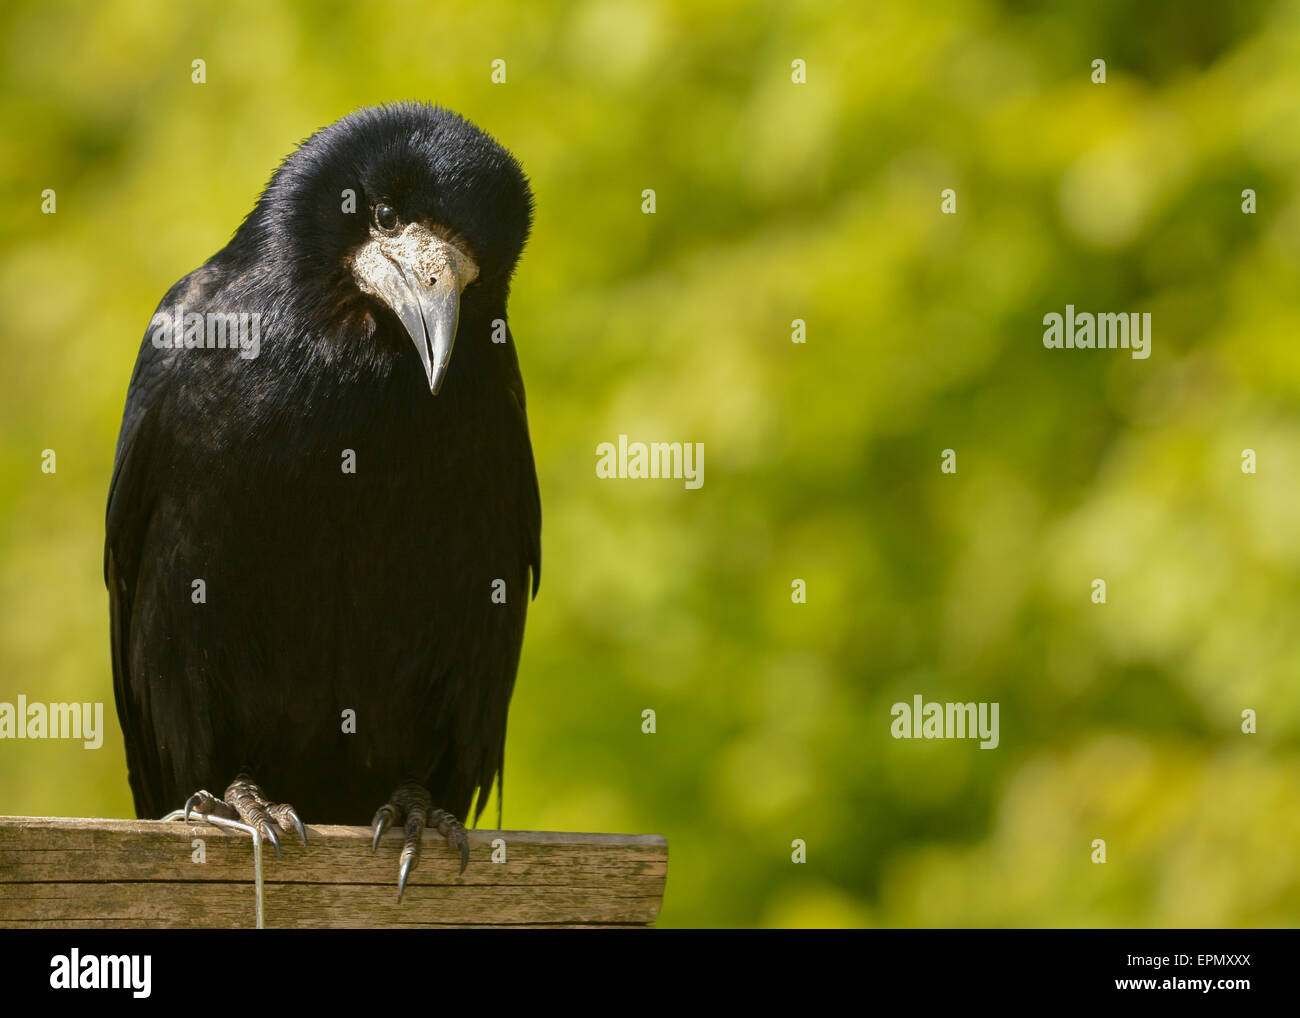 Portrait of rook against green soft focus background with copyspace - Stock Image